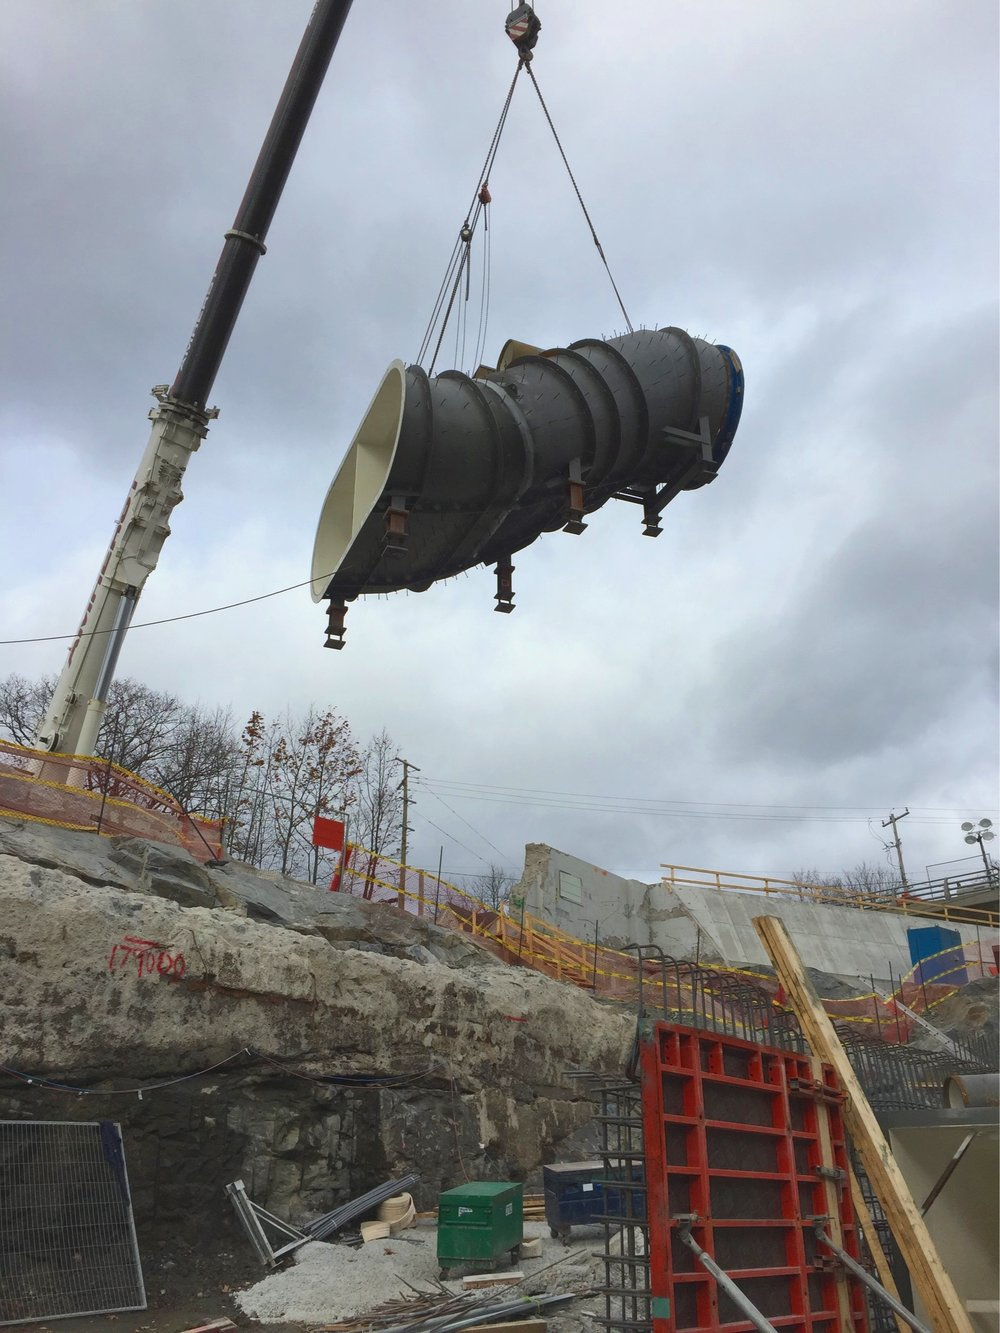 - Embertech completed the installation of the penstock and draft tubes with a level of skill and expertise that enabled the construction schedule to stay on track, on schedule without any issues or concerns.